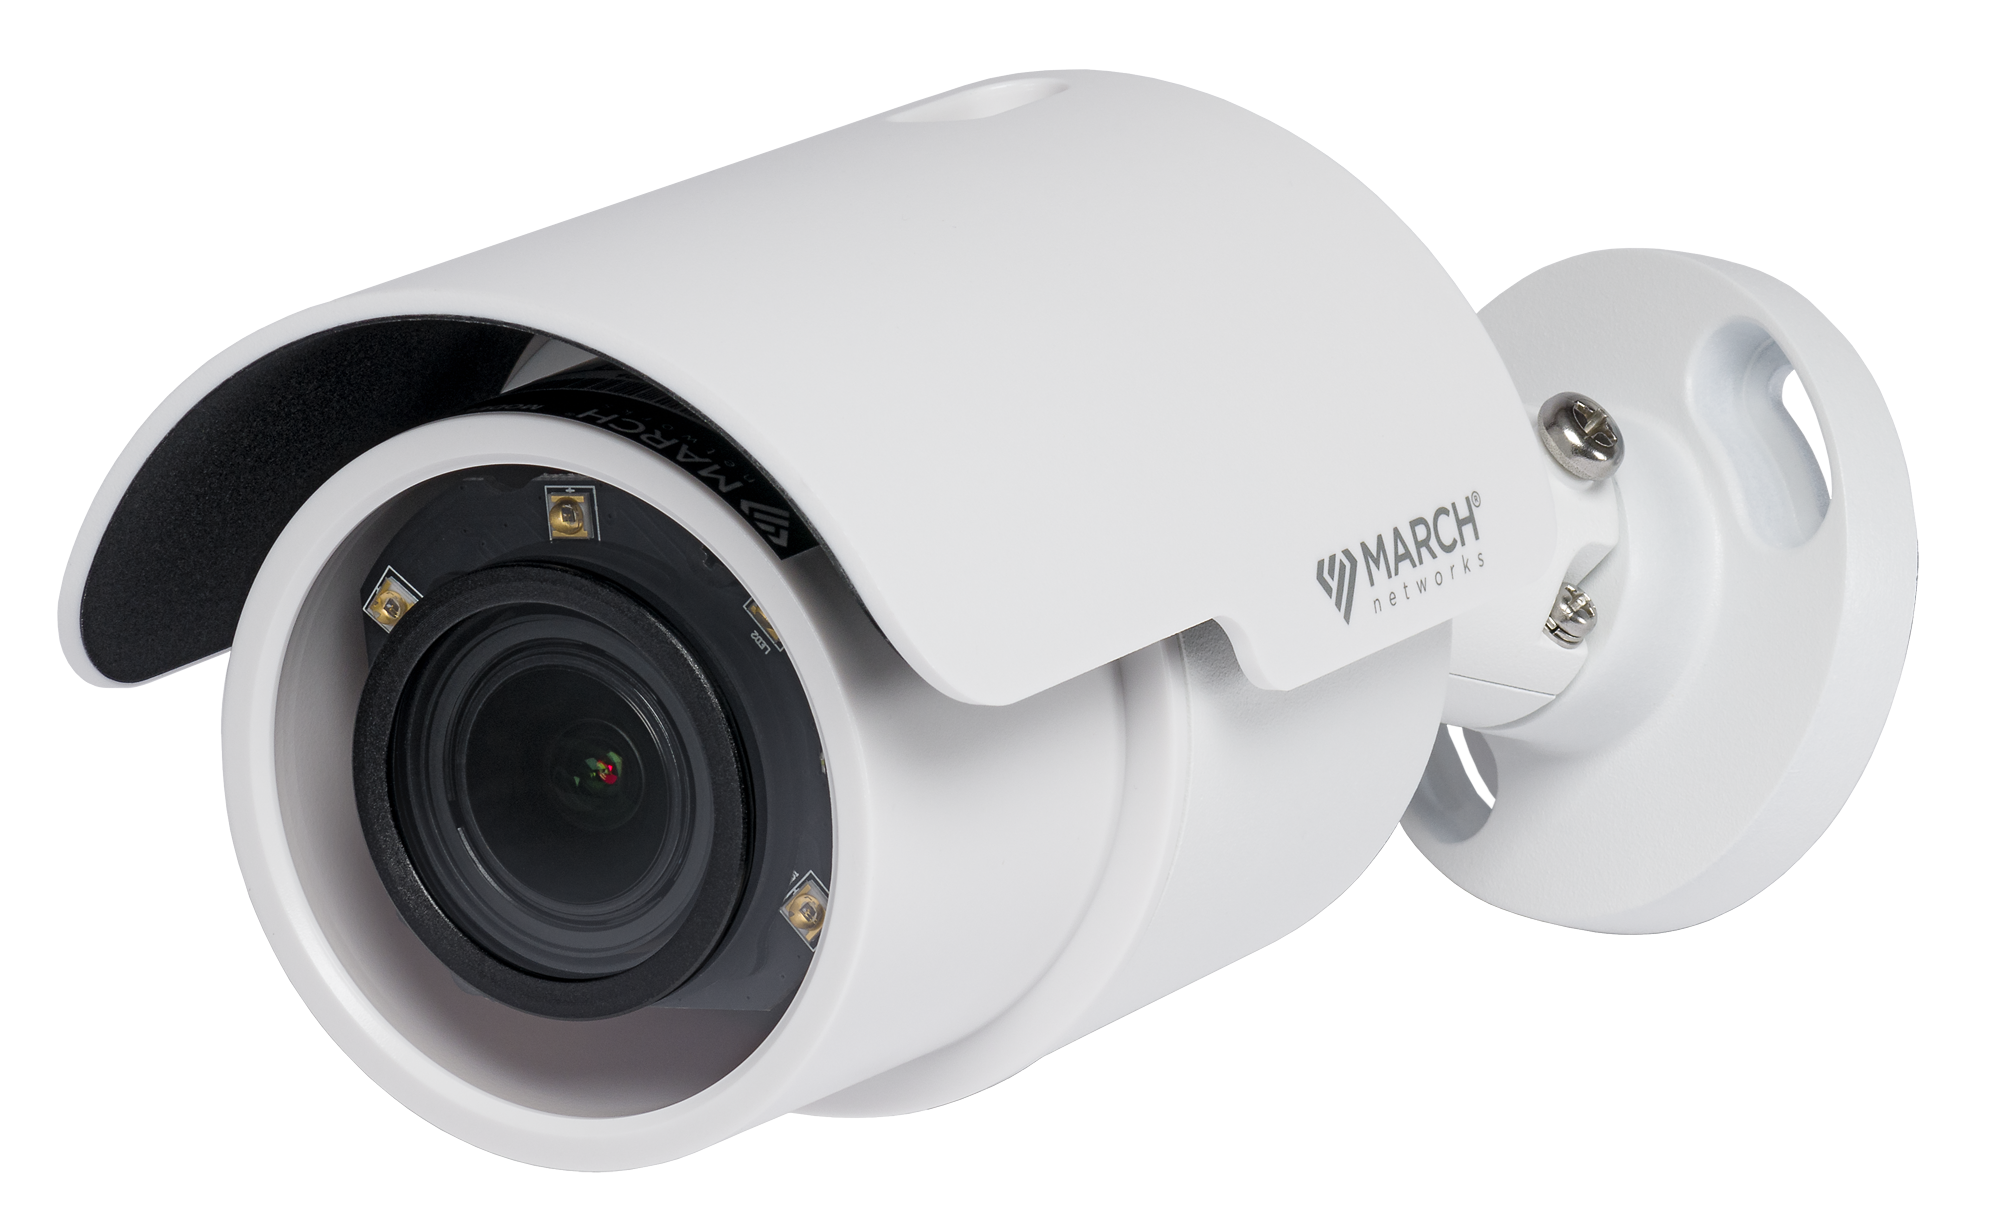 The SE2 IR MicroBullet security camera